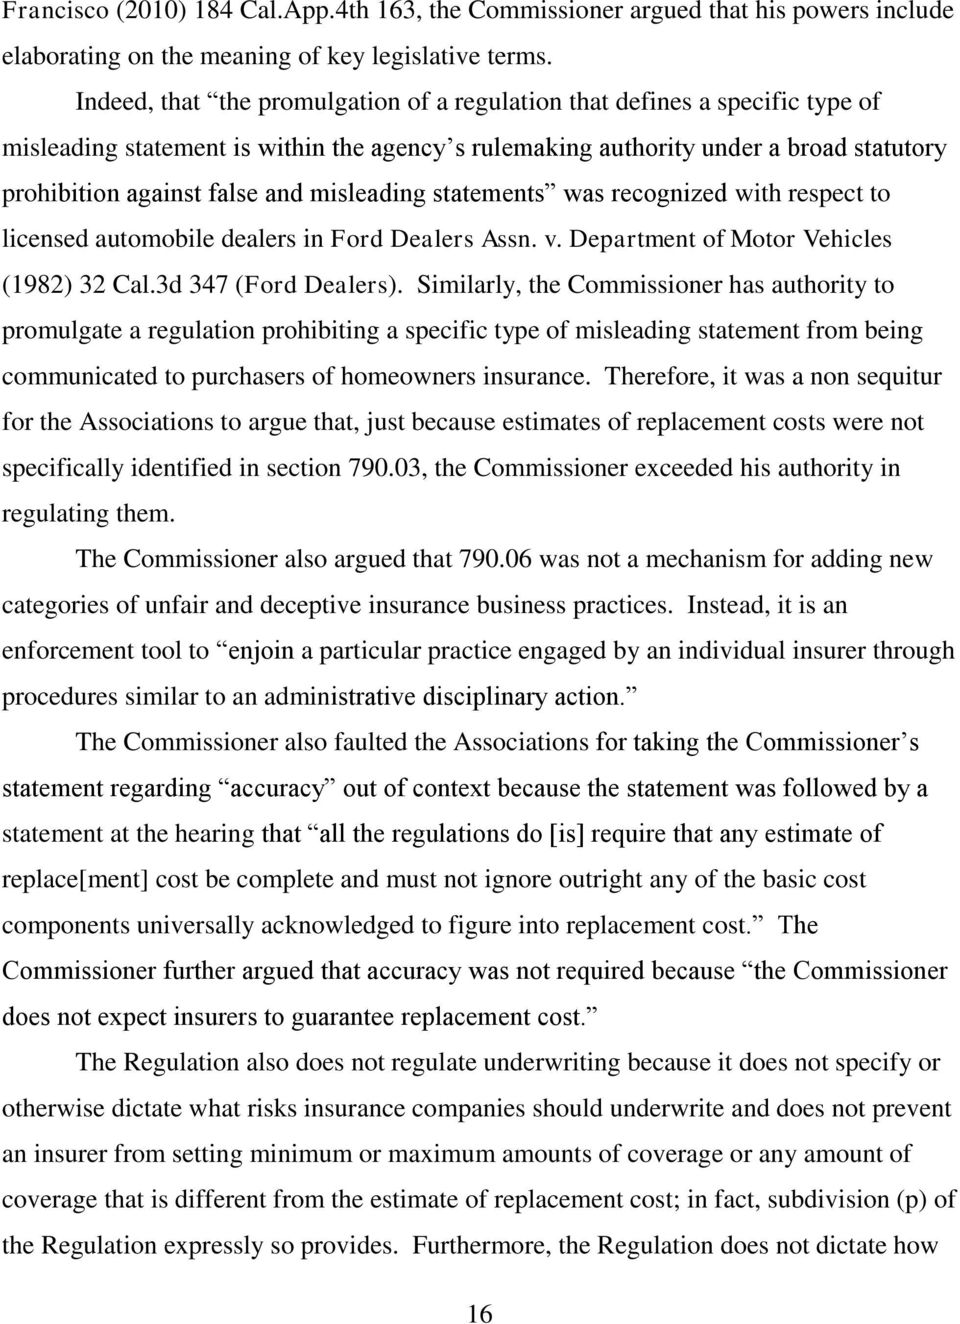 misleading statements was recognized with respect to licensed automobile dealers in Ford Dealers Assn. v. Department of Motor Vehicles (1982) 32 Cal.3d 347 (Ford Dealers).